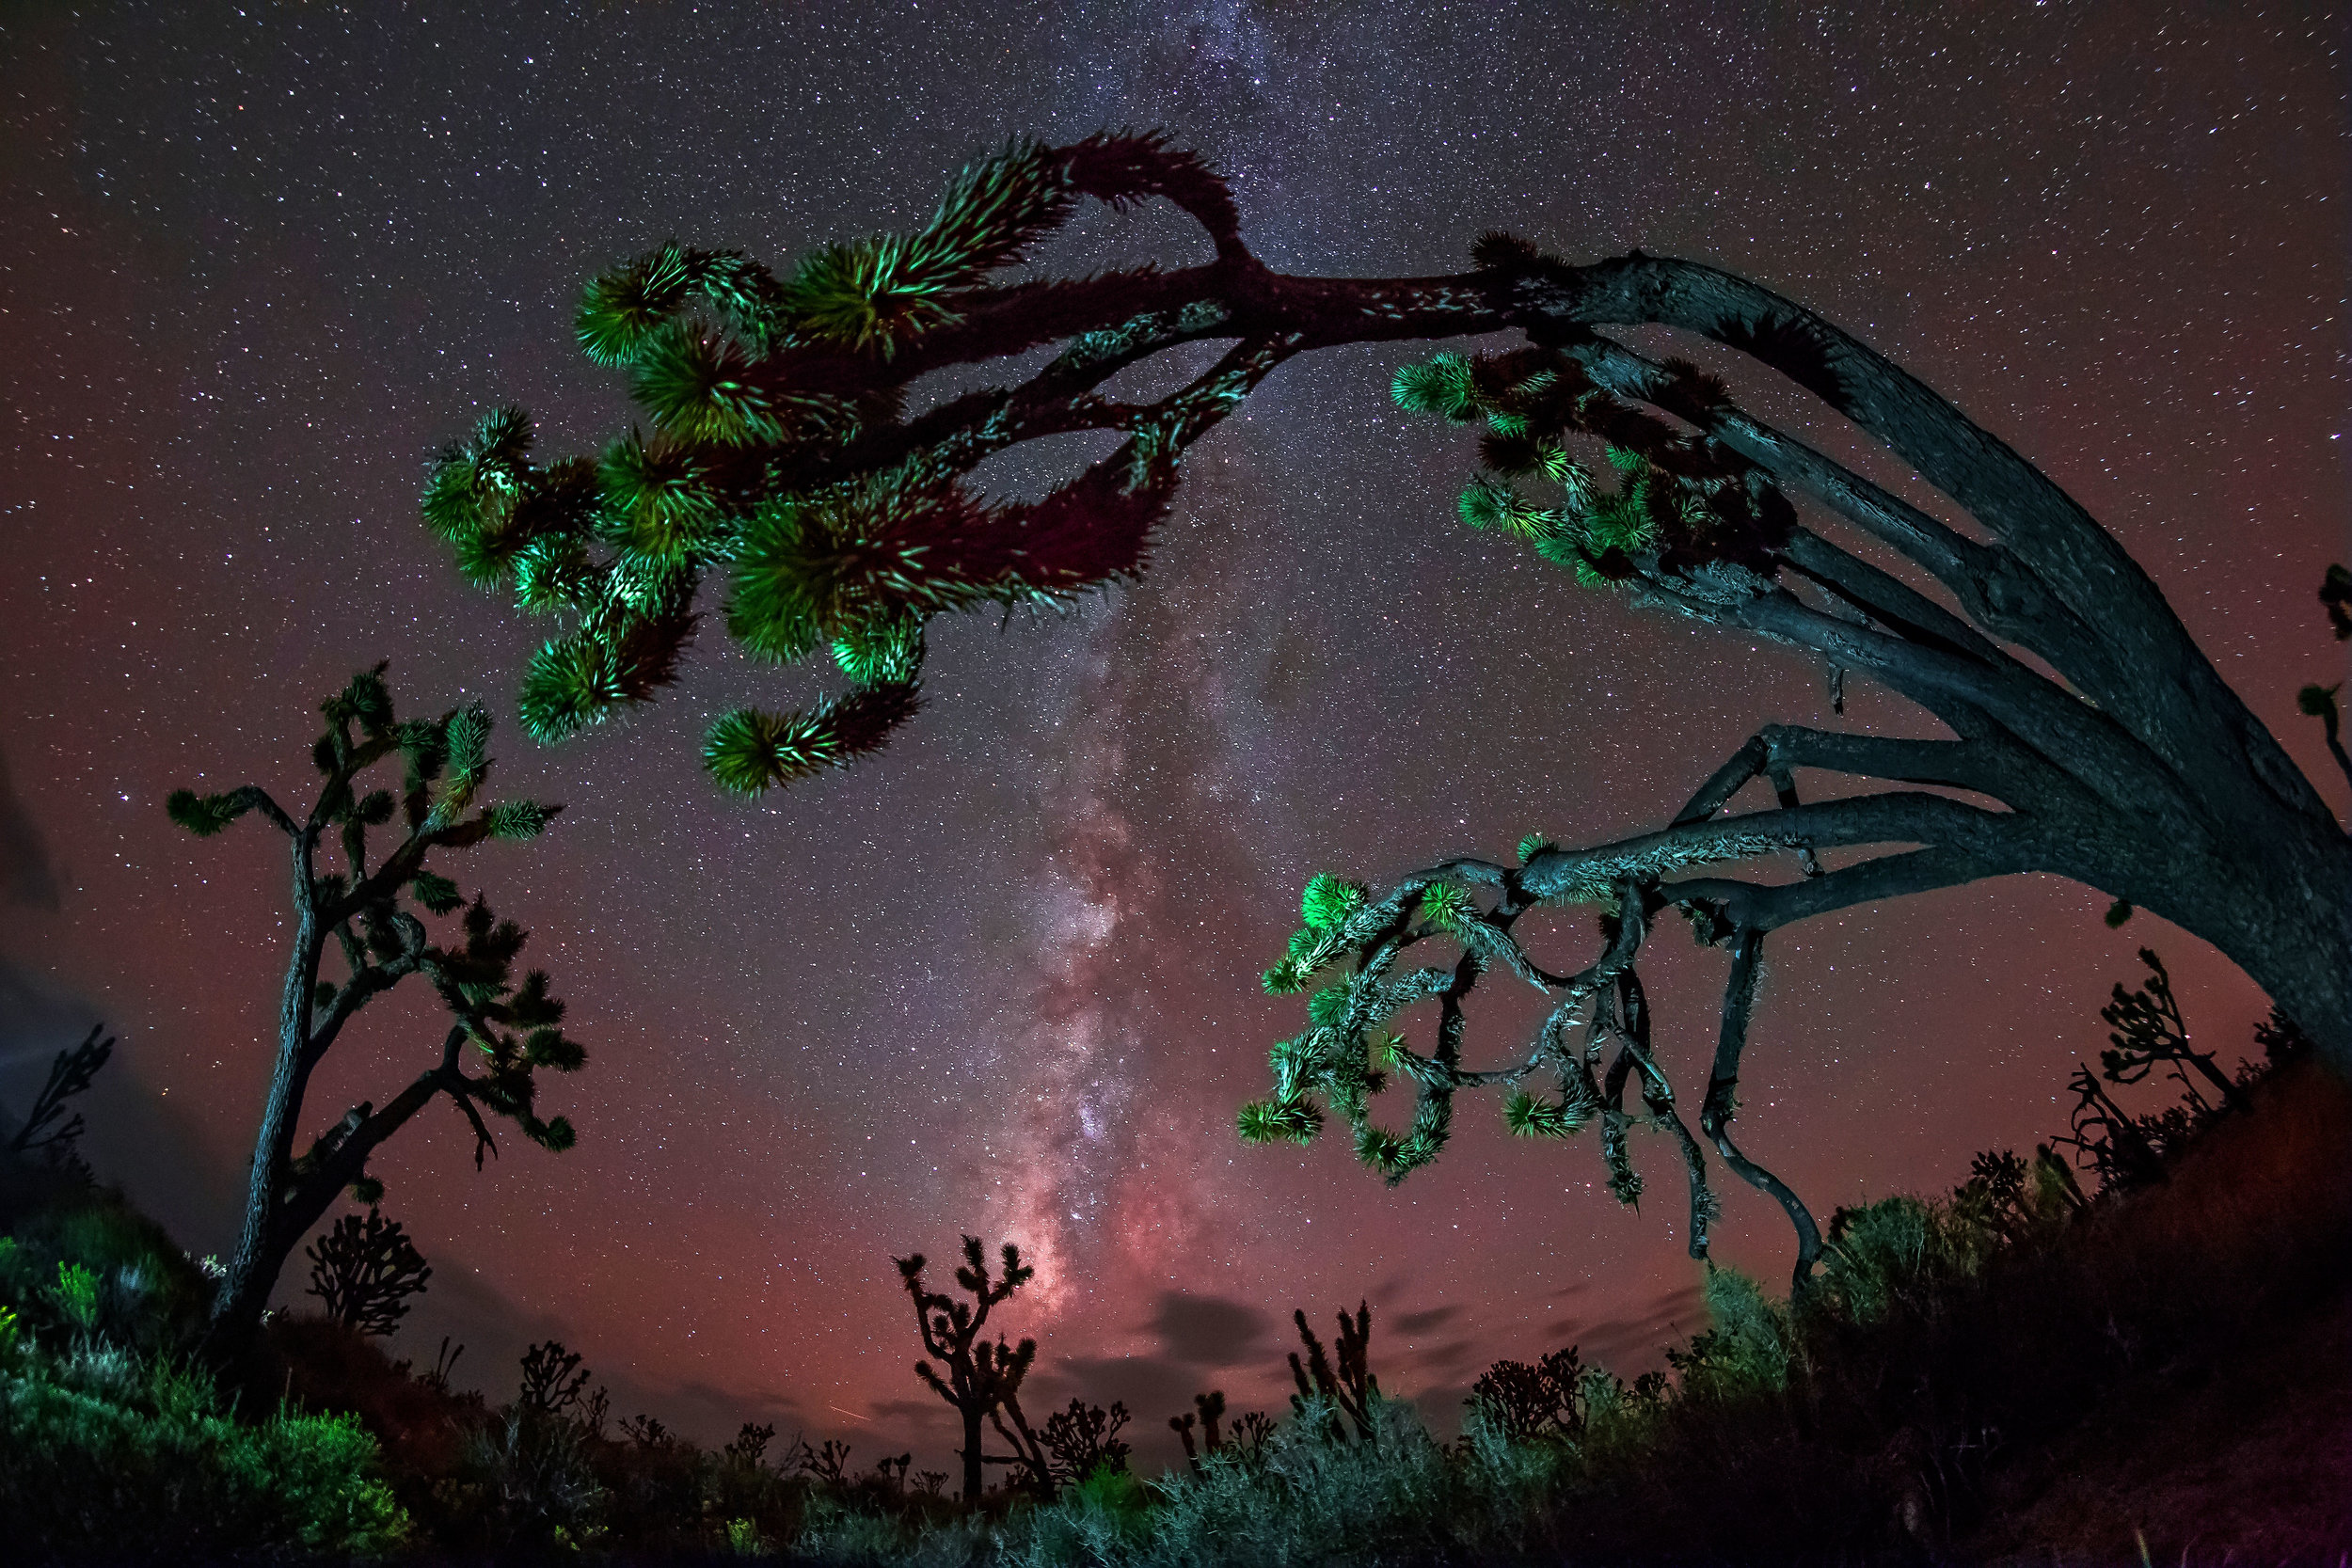 Mojave National Preserve, California, with Los Angeles skyglow intruding.